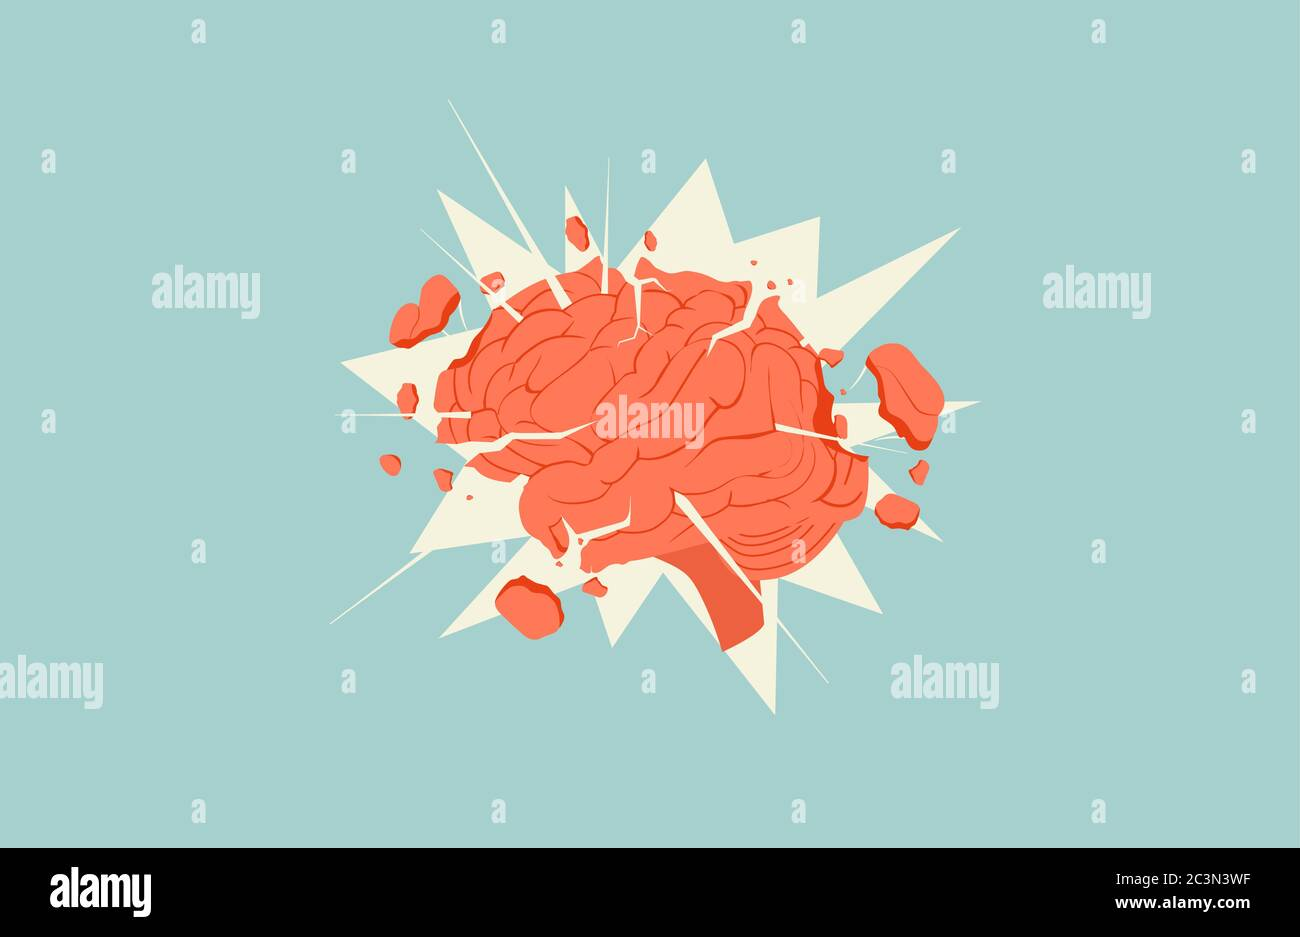 Exploding Flying Apart Parts Brain Illustration Concept Information Overload Lack Of Calm Thinking Creative Ideological Stock Vector Image Art Alamy